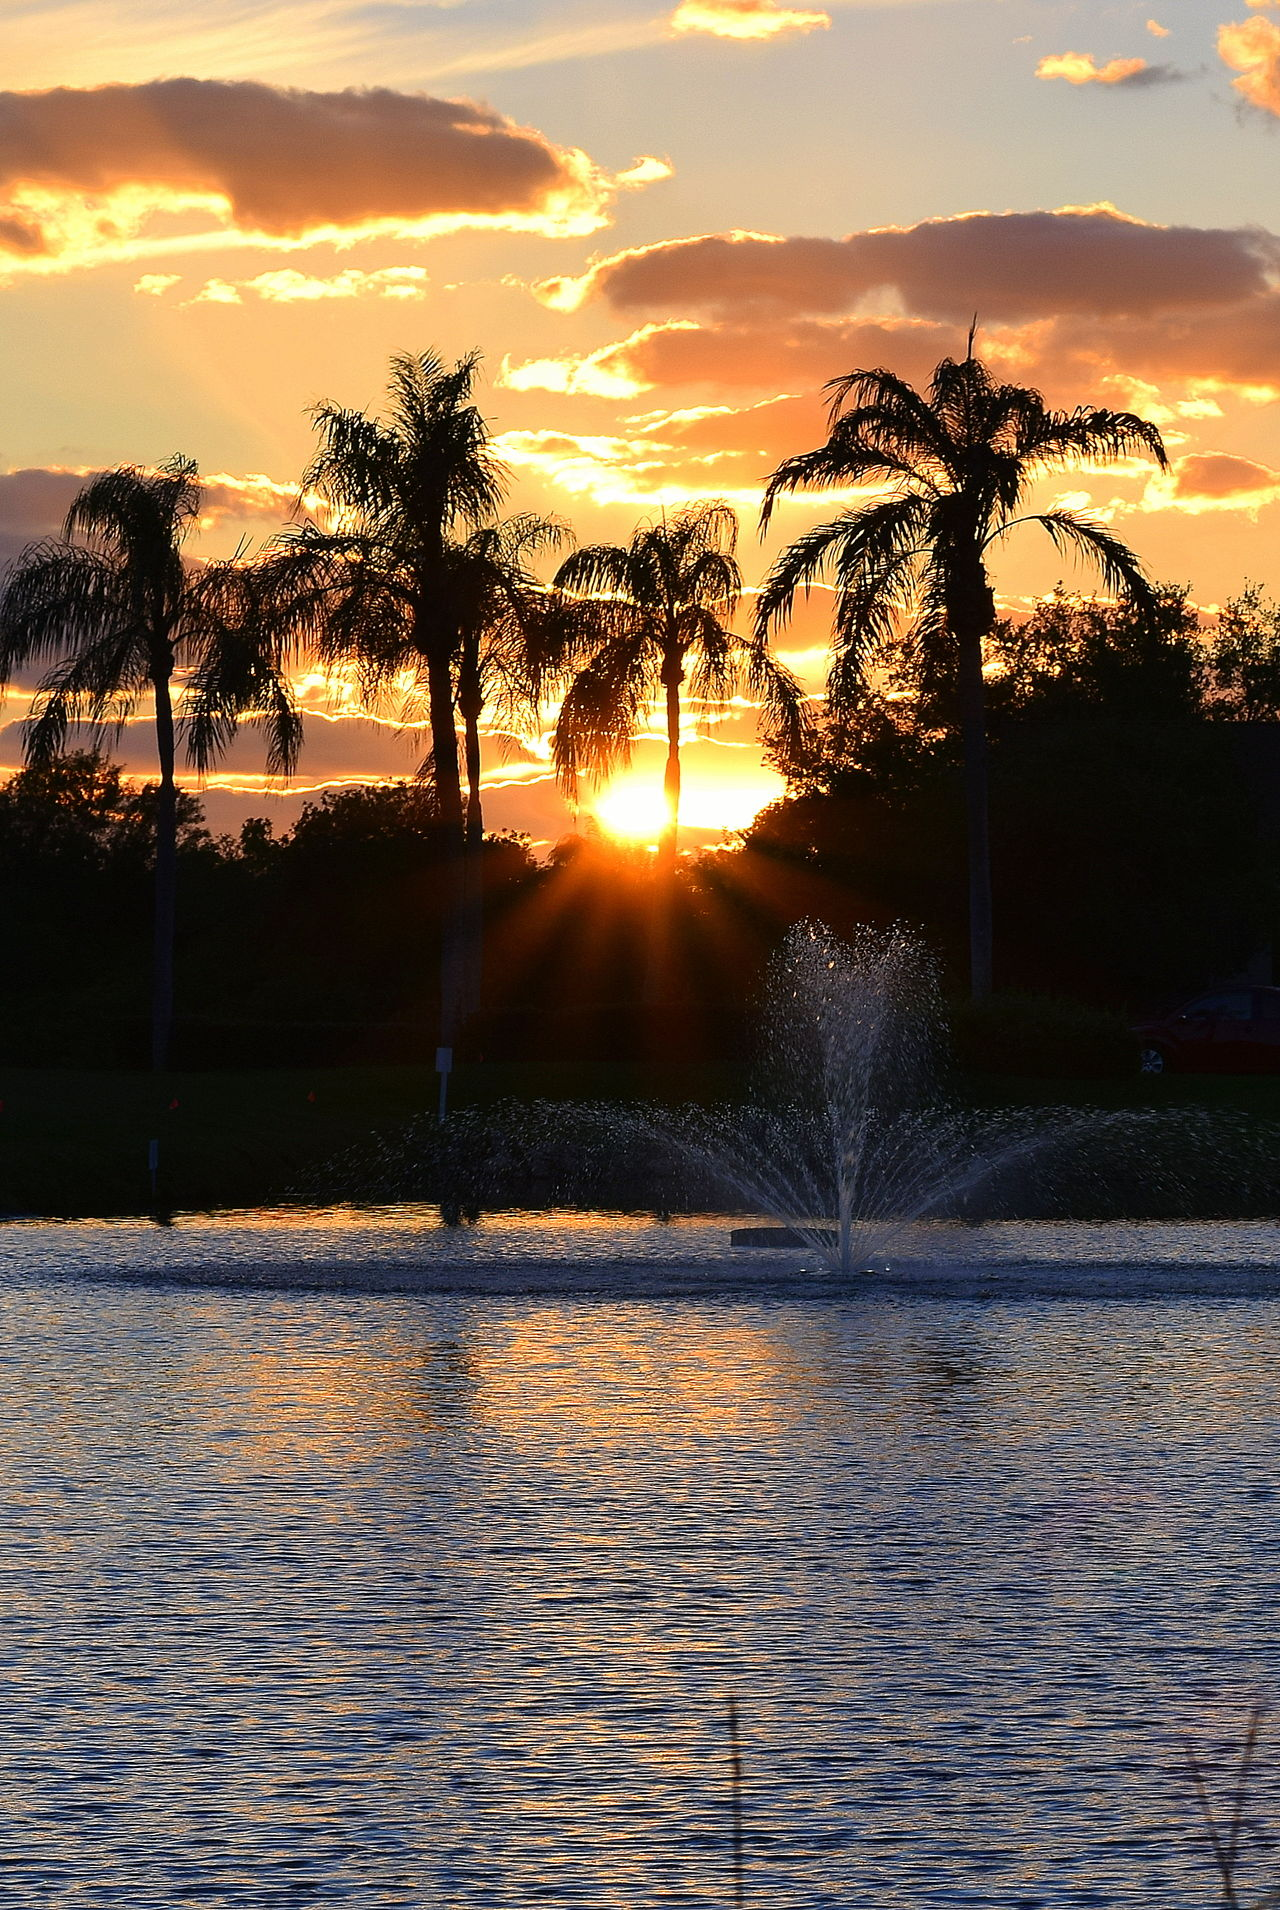 Sunset in Venice Florida Beauty In Nature Fountain Outdoors Palm Tree Palm Tree Silhouette Palm Trees Scenics Silhouette Sky Sun Sunset Sunset Silhouettes Tree Water Water Fountain